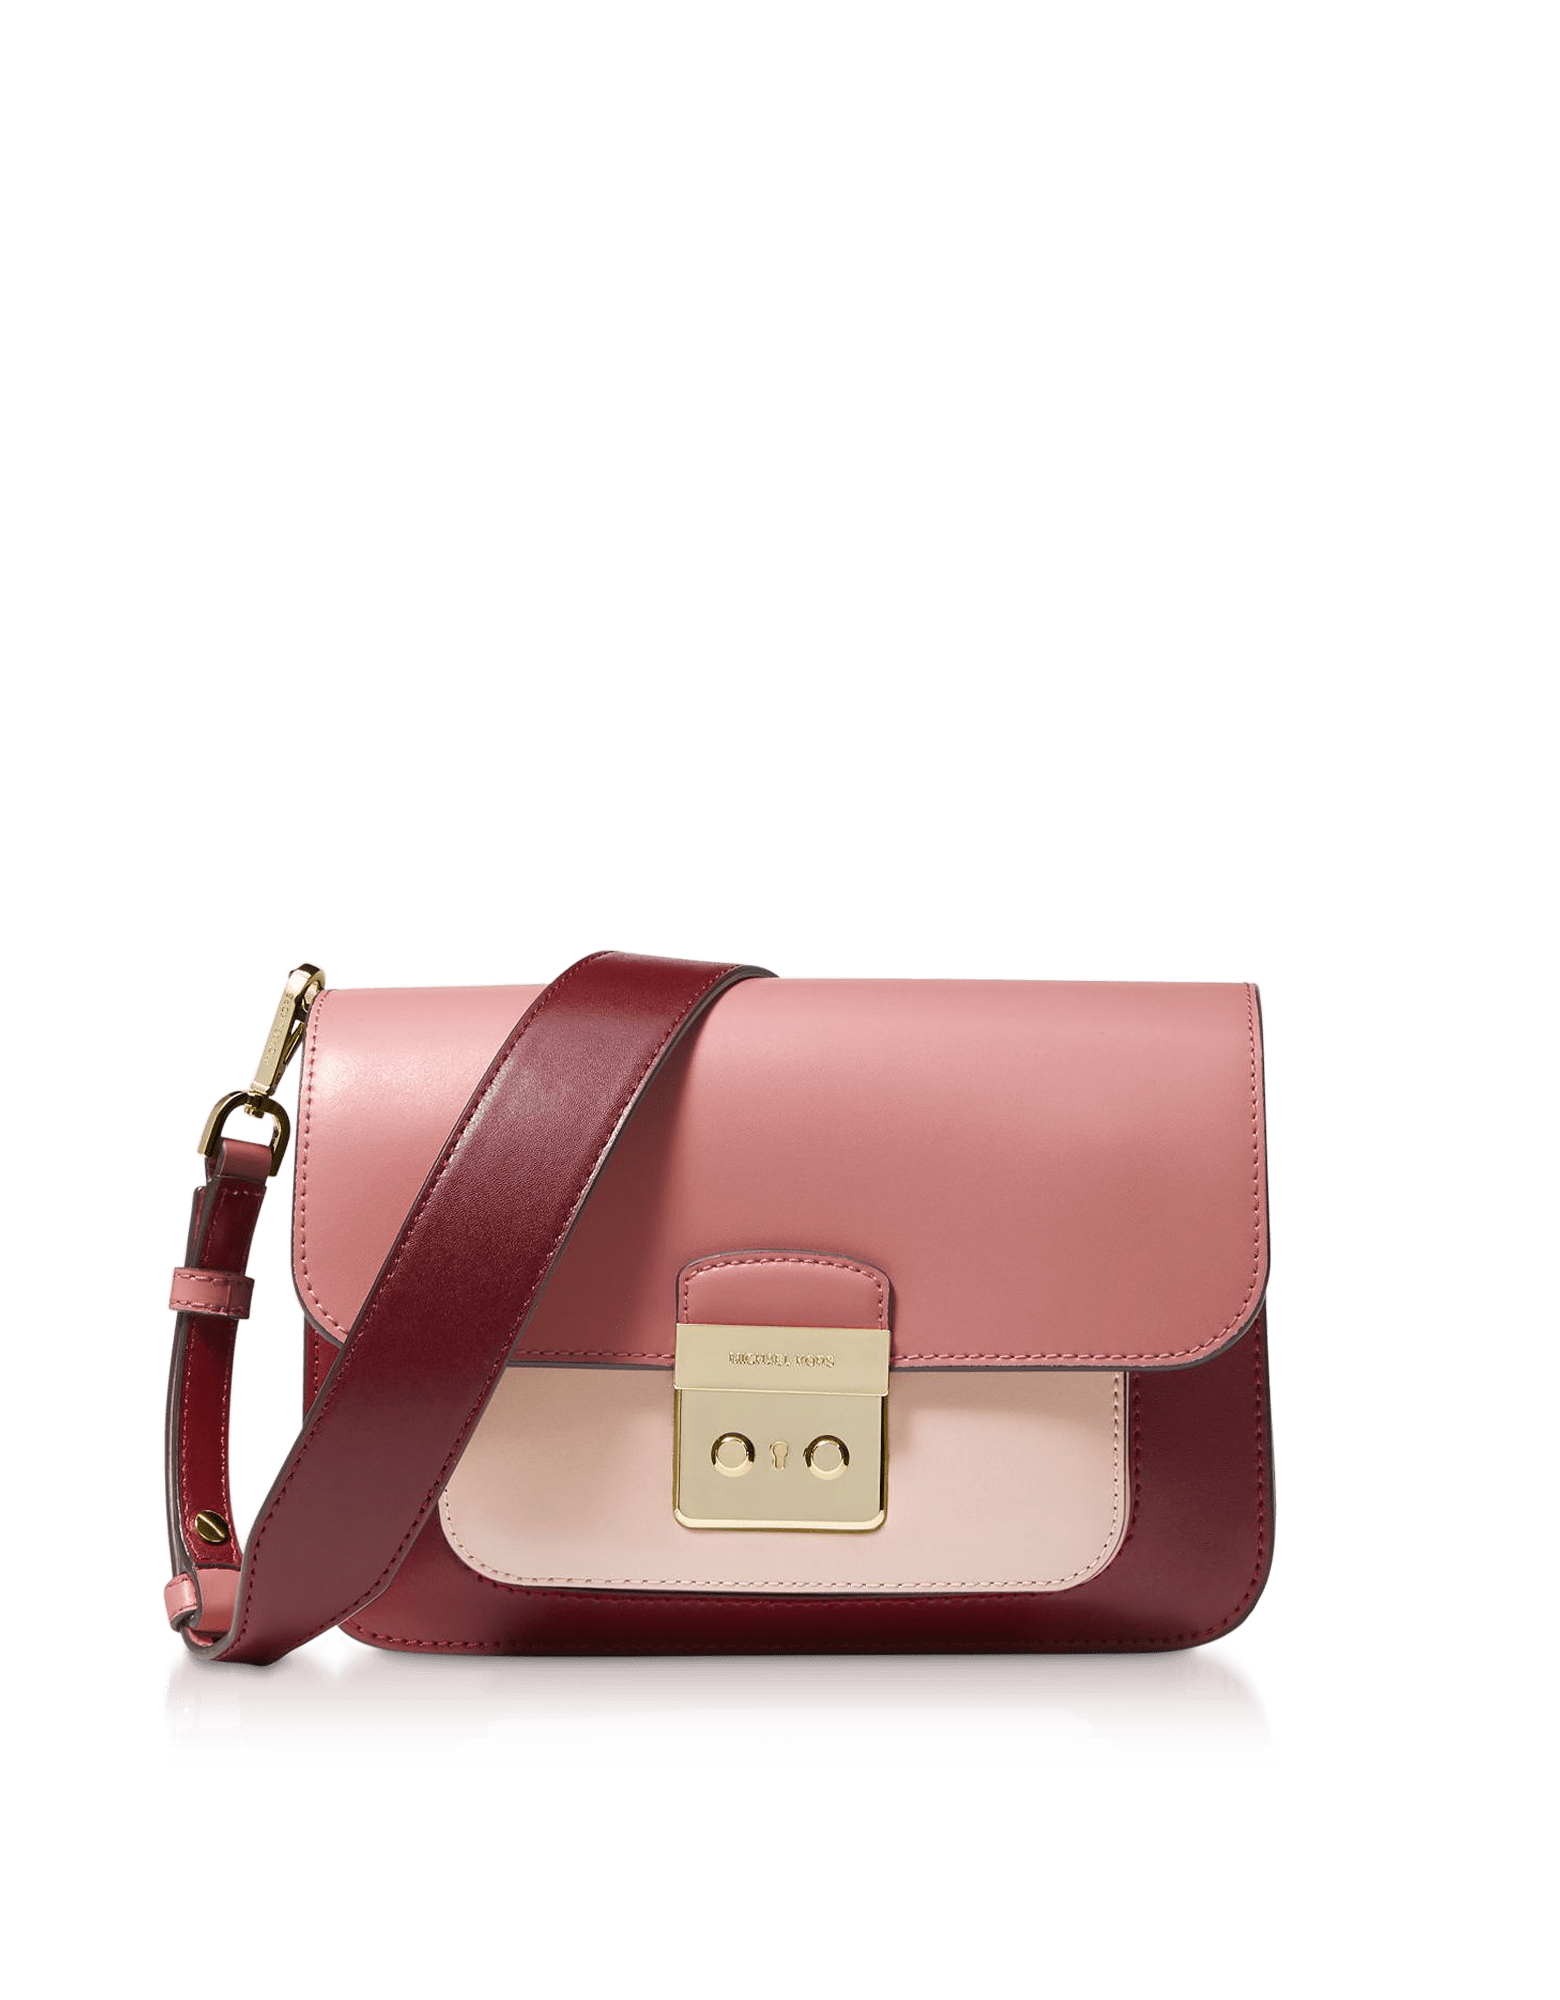 4ecf189e483593 Forzieri] The New Michael Kors has just landed! - 👑BQ.sg BargainQueen